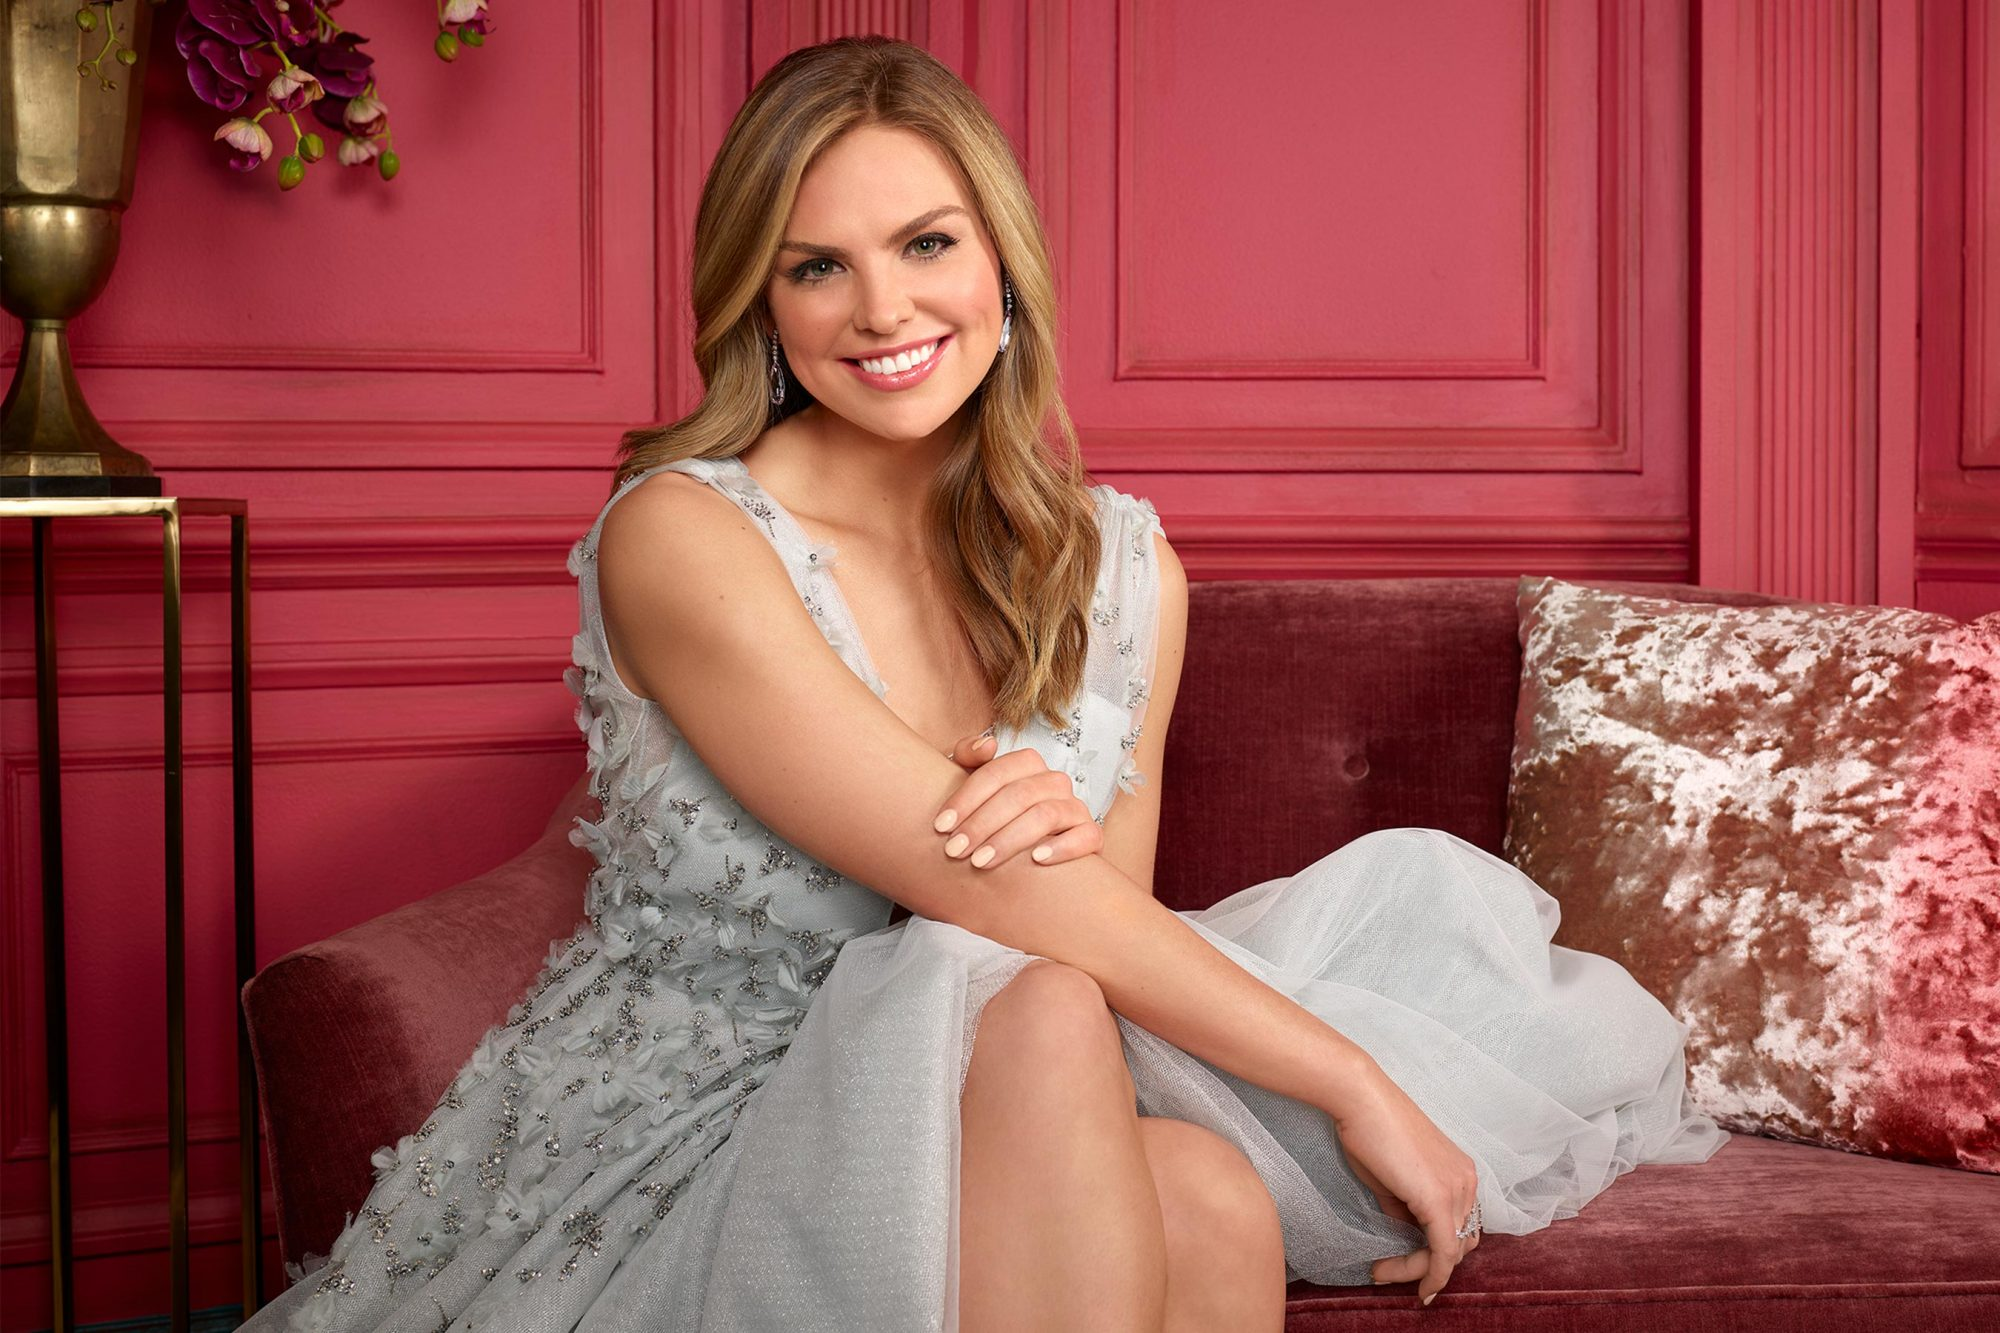 """THE BACHELORETTE - Hannah Brown caught the eye of Colton Underwood early on during the 23rd season of """"The Bachelor,"""" showing him, and all of America, what Alabama Hannah is made of - a fun country girl who is unapologetically herself. After being sent home unexpectedly, Hannah took the time to reflect on her breakup, gaining a powerful understanding of her desire to be deeply and fiercely loved. Now, with a newfound sense of self and a little southern charm, she is more ready than ever to find her true love on the milestone 15th season of """"The Bachelorette."""" (ABC/Ed Herrera) HANNAH BROWN"""